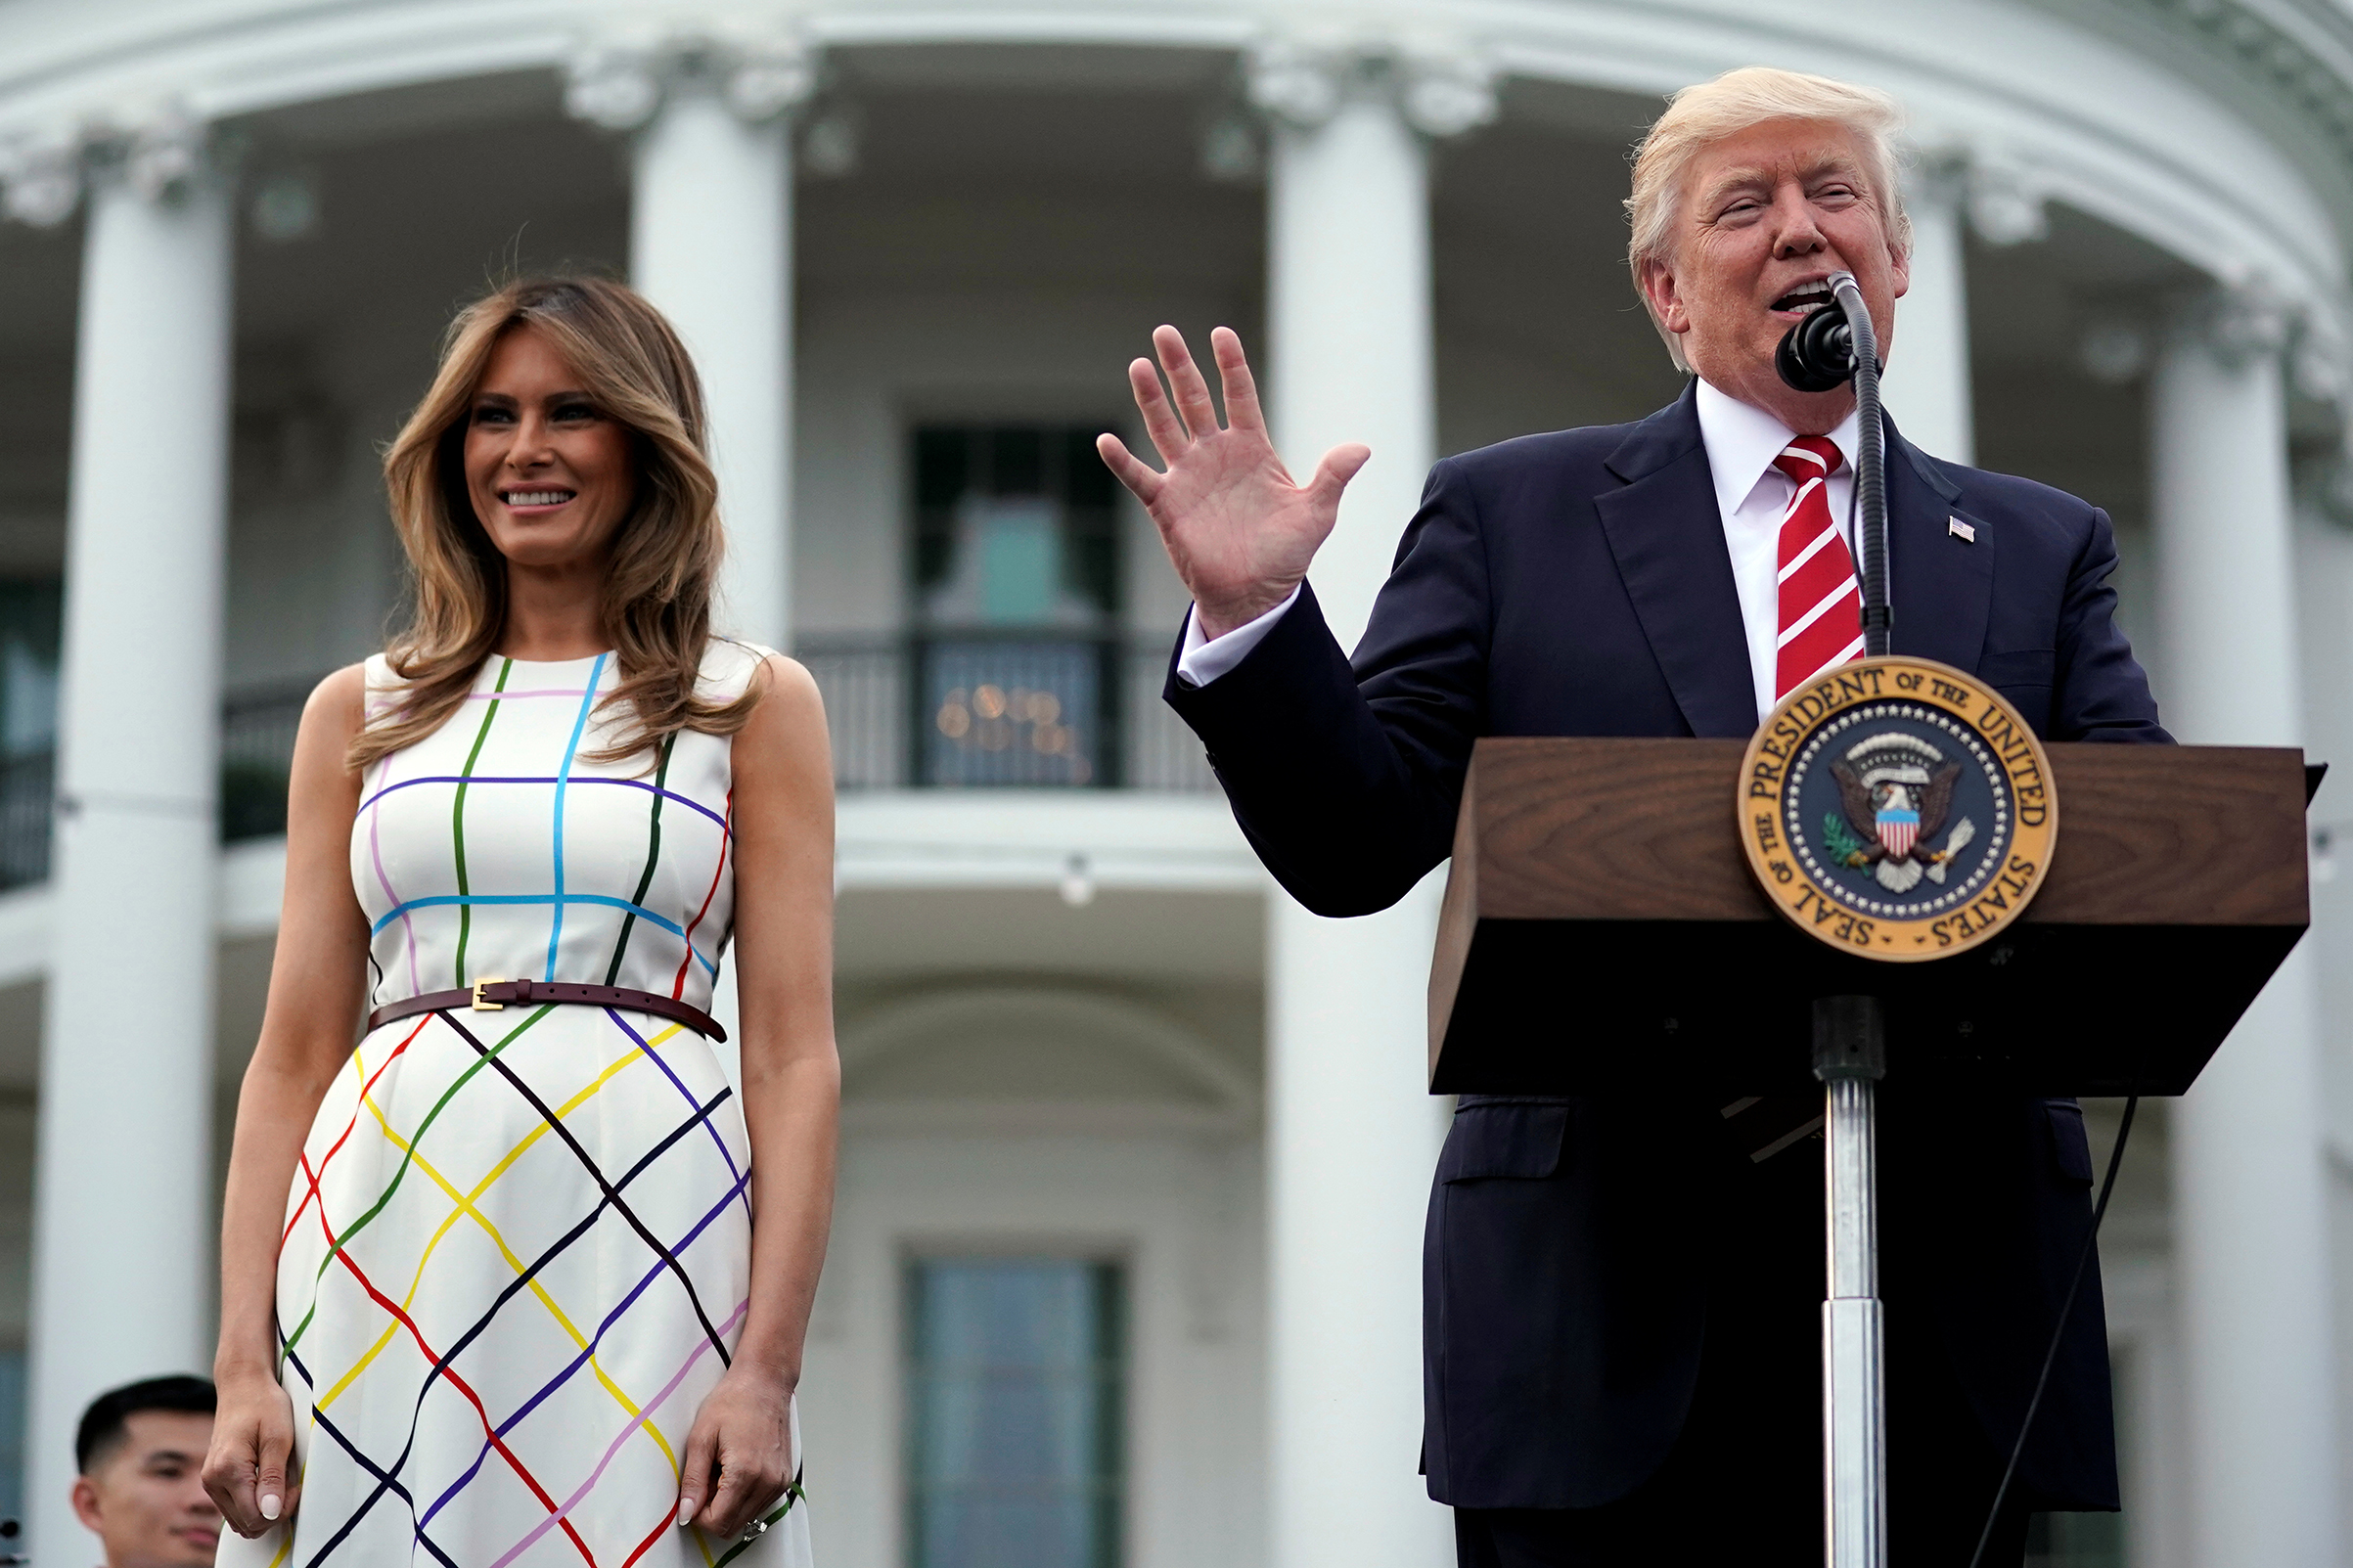 President Donald Trump delivers remarks as he hosts a Congressional picnic event, accompanied by First Lady Melania Trump wearing  a dress made in Italy by Greek designer Mary Katrantzou,  at the White House in Washington, U.S., June 22, 2017.